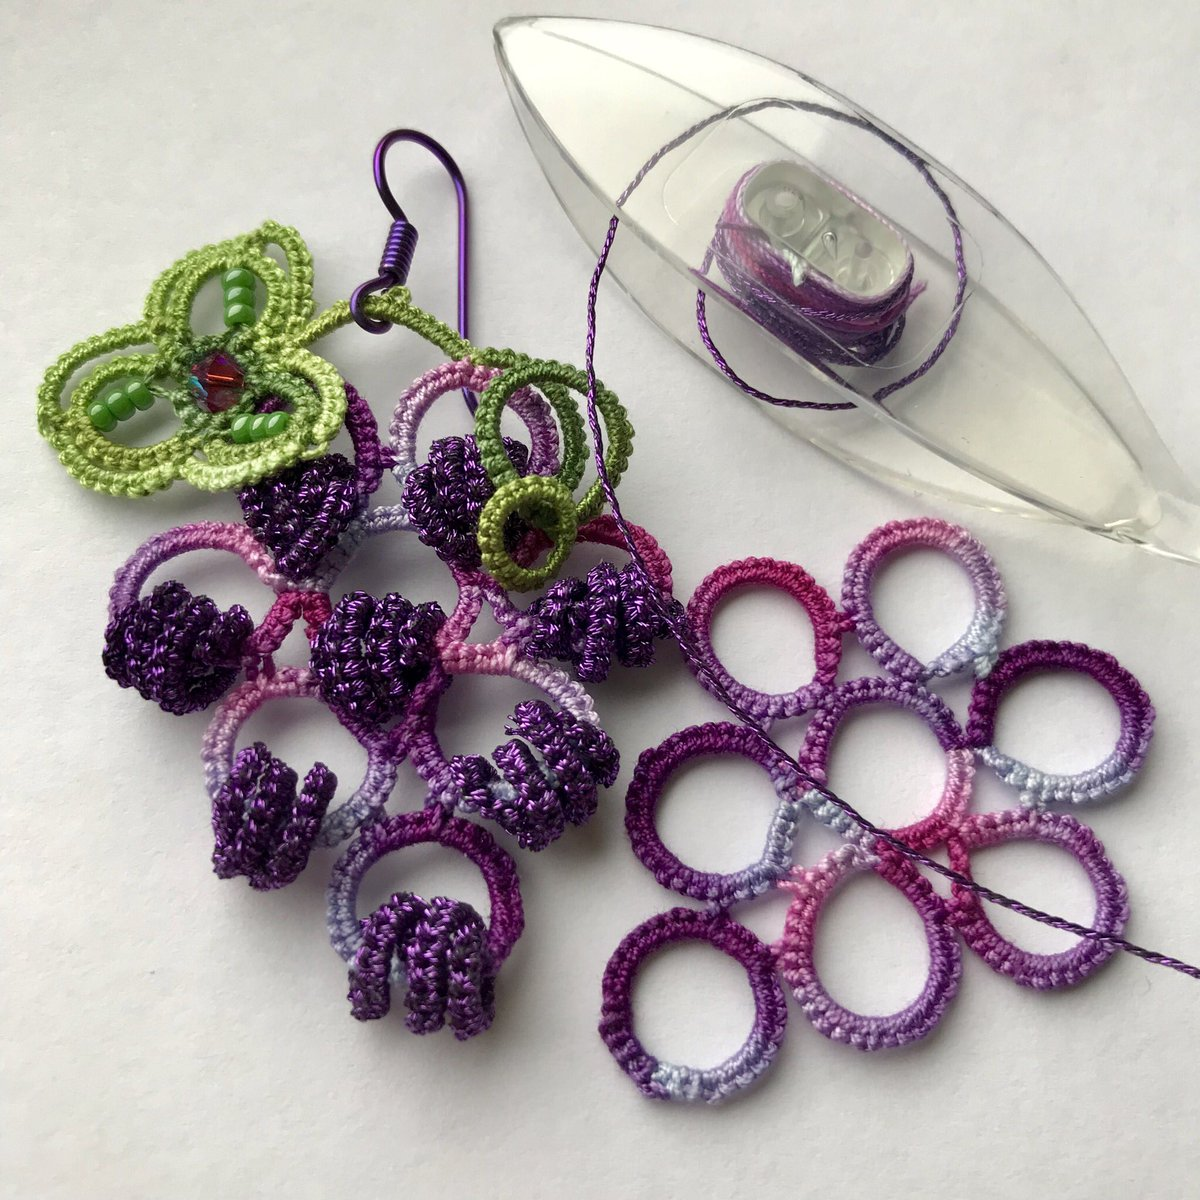 Working on grape earrings from a pattern in an Italian magazine, IL MIO Chiacchierino Oct/Nov2014. #tatting #chiacchierino #grapeearrings #tattingearrings